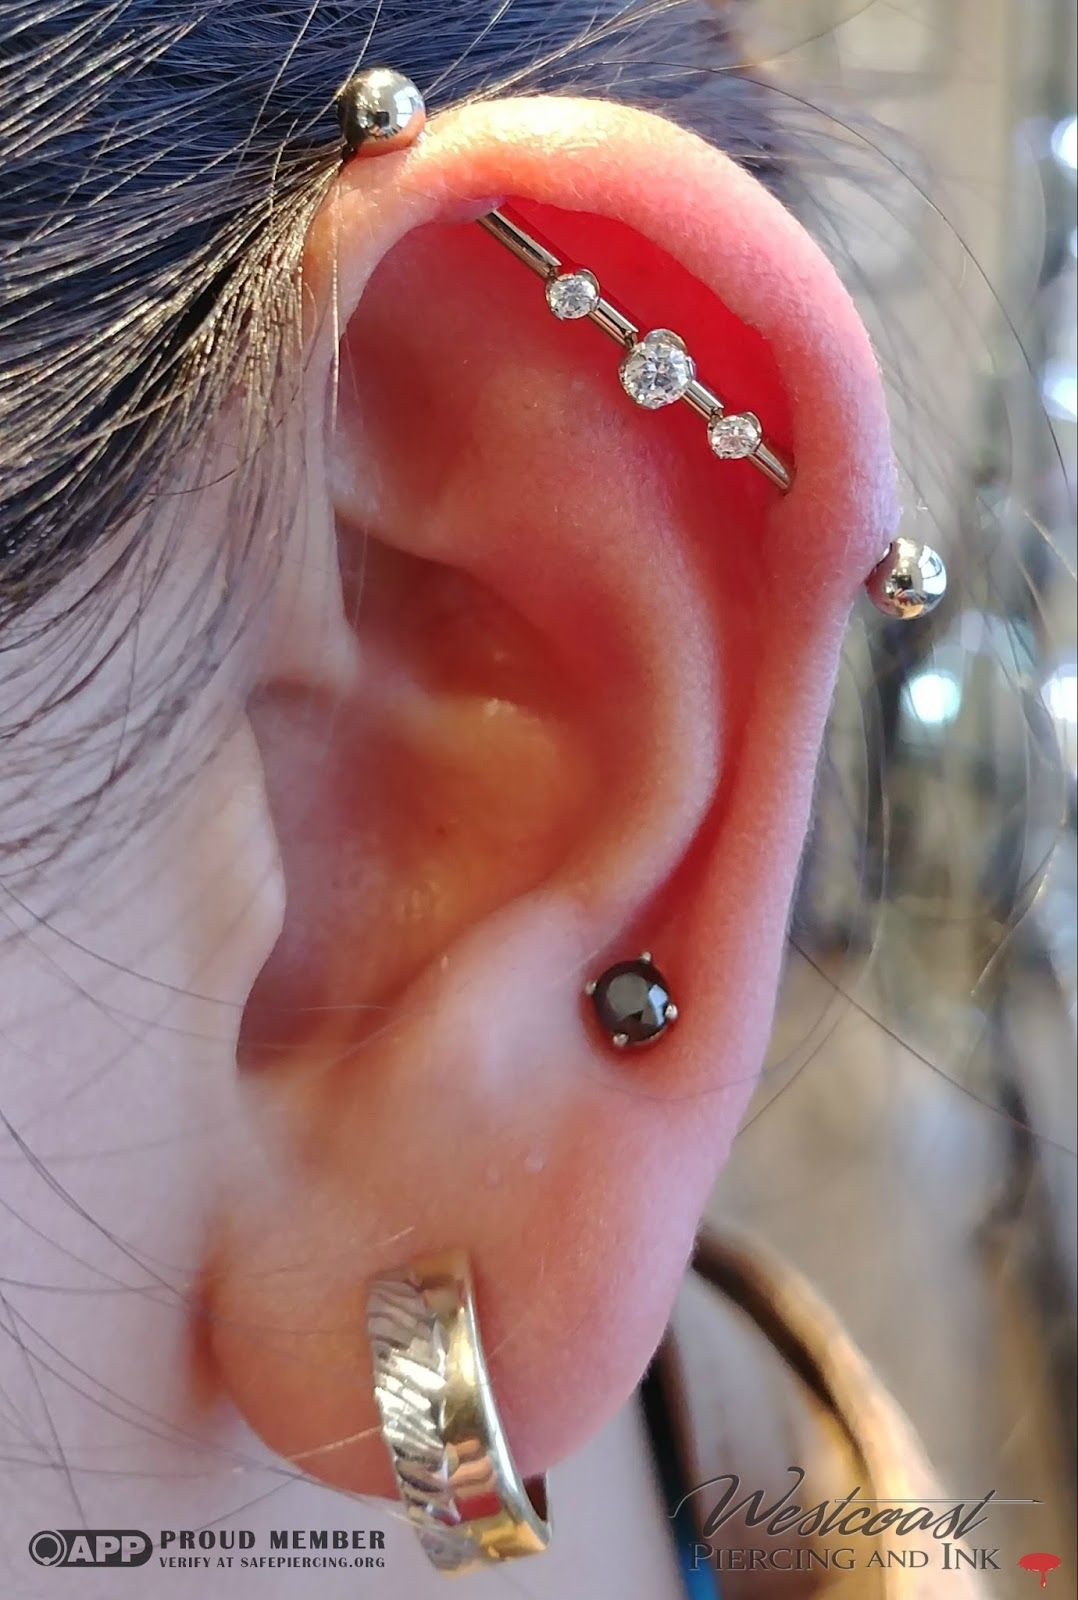 Industrial Piercing Jewelry Gold : industrial, piercing, jewelry, Custom, White, Industrial, Anatometal, Earings, Piercings,, Piercing, Jewelry,, Piercings